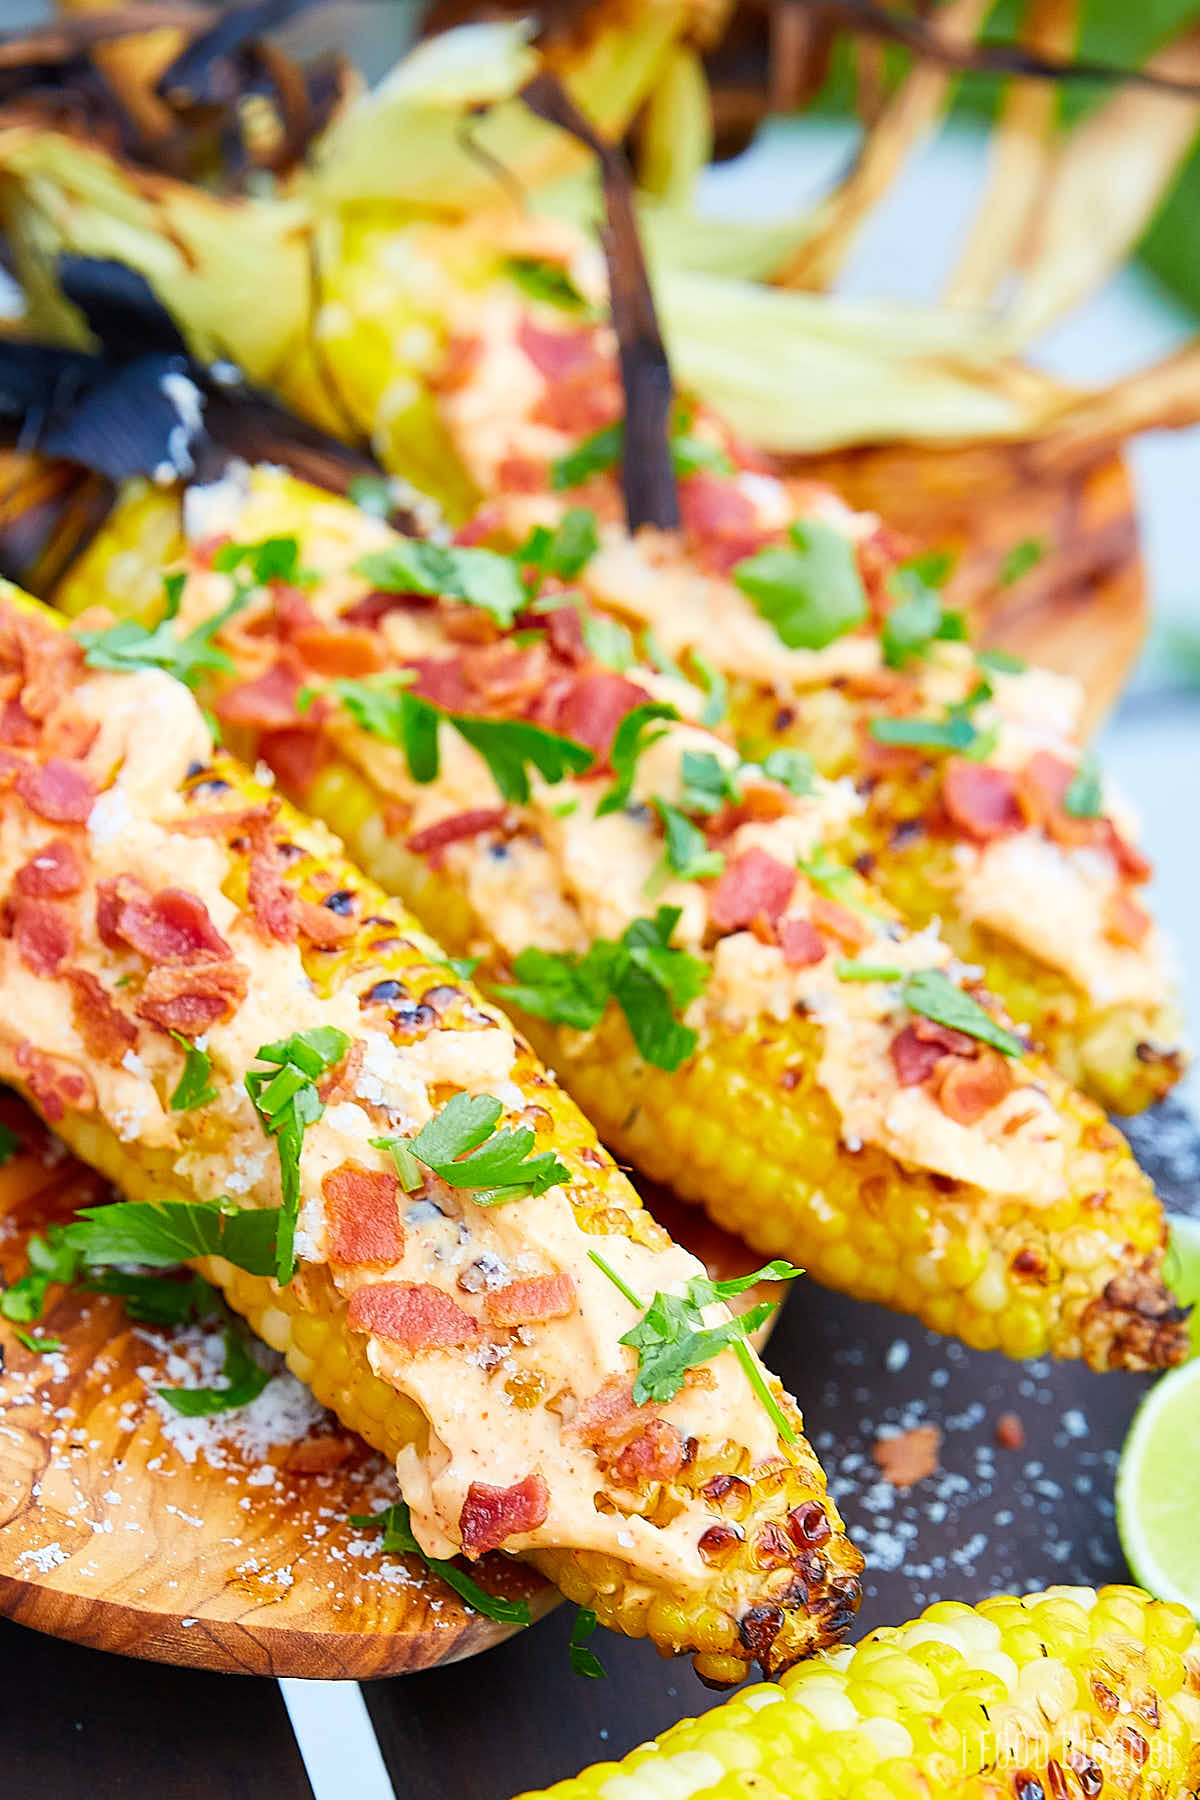 Grilled corn on the cob, smothered with mayo and topped with bacon and parsley.